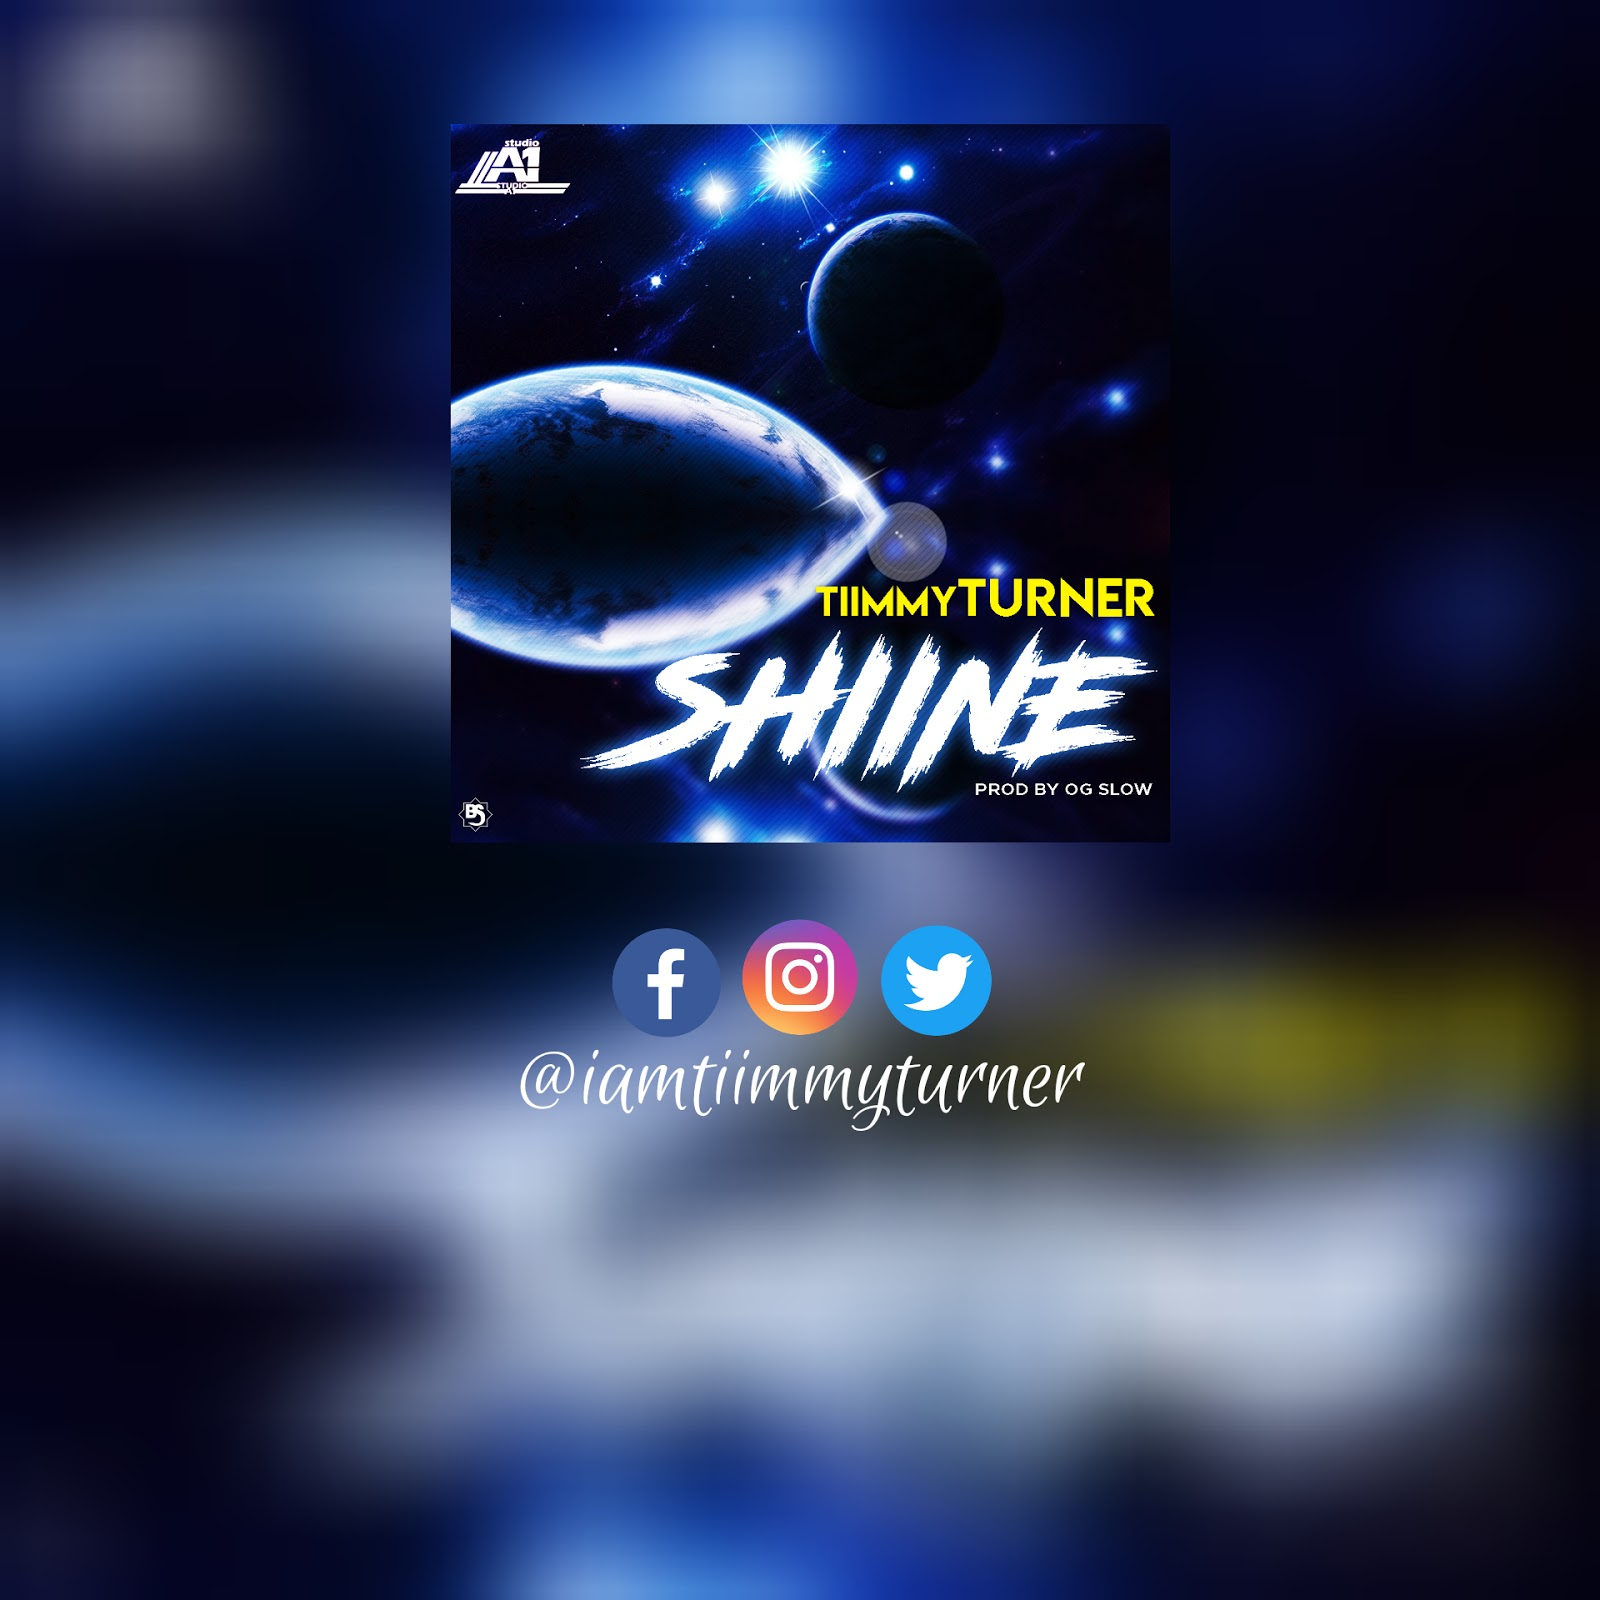 Music Free Mp3 Tiimmy Turner Shiine Prod By Slow Mix Welcome To Afritunes